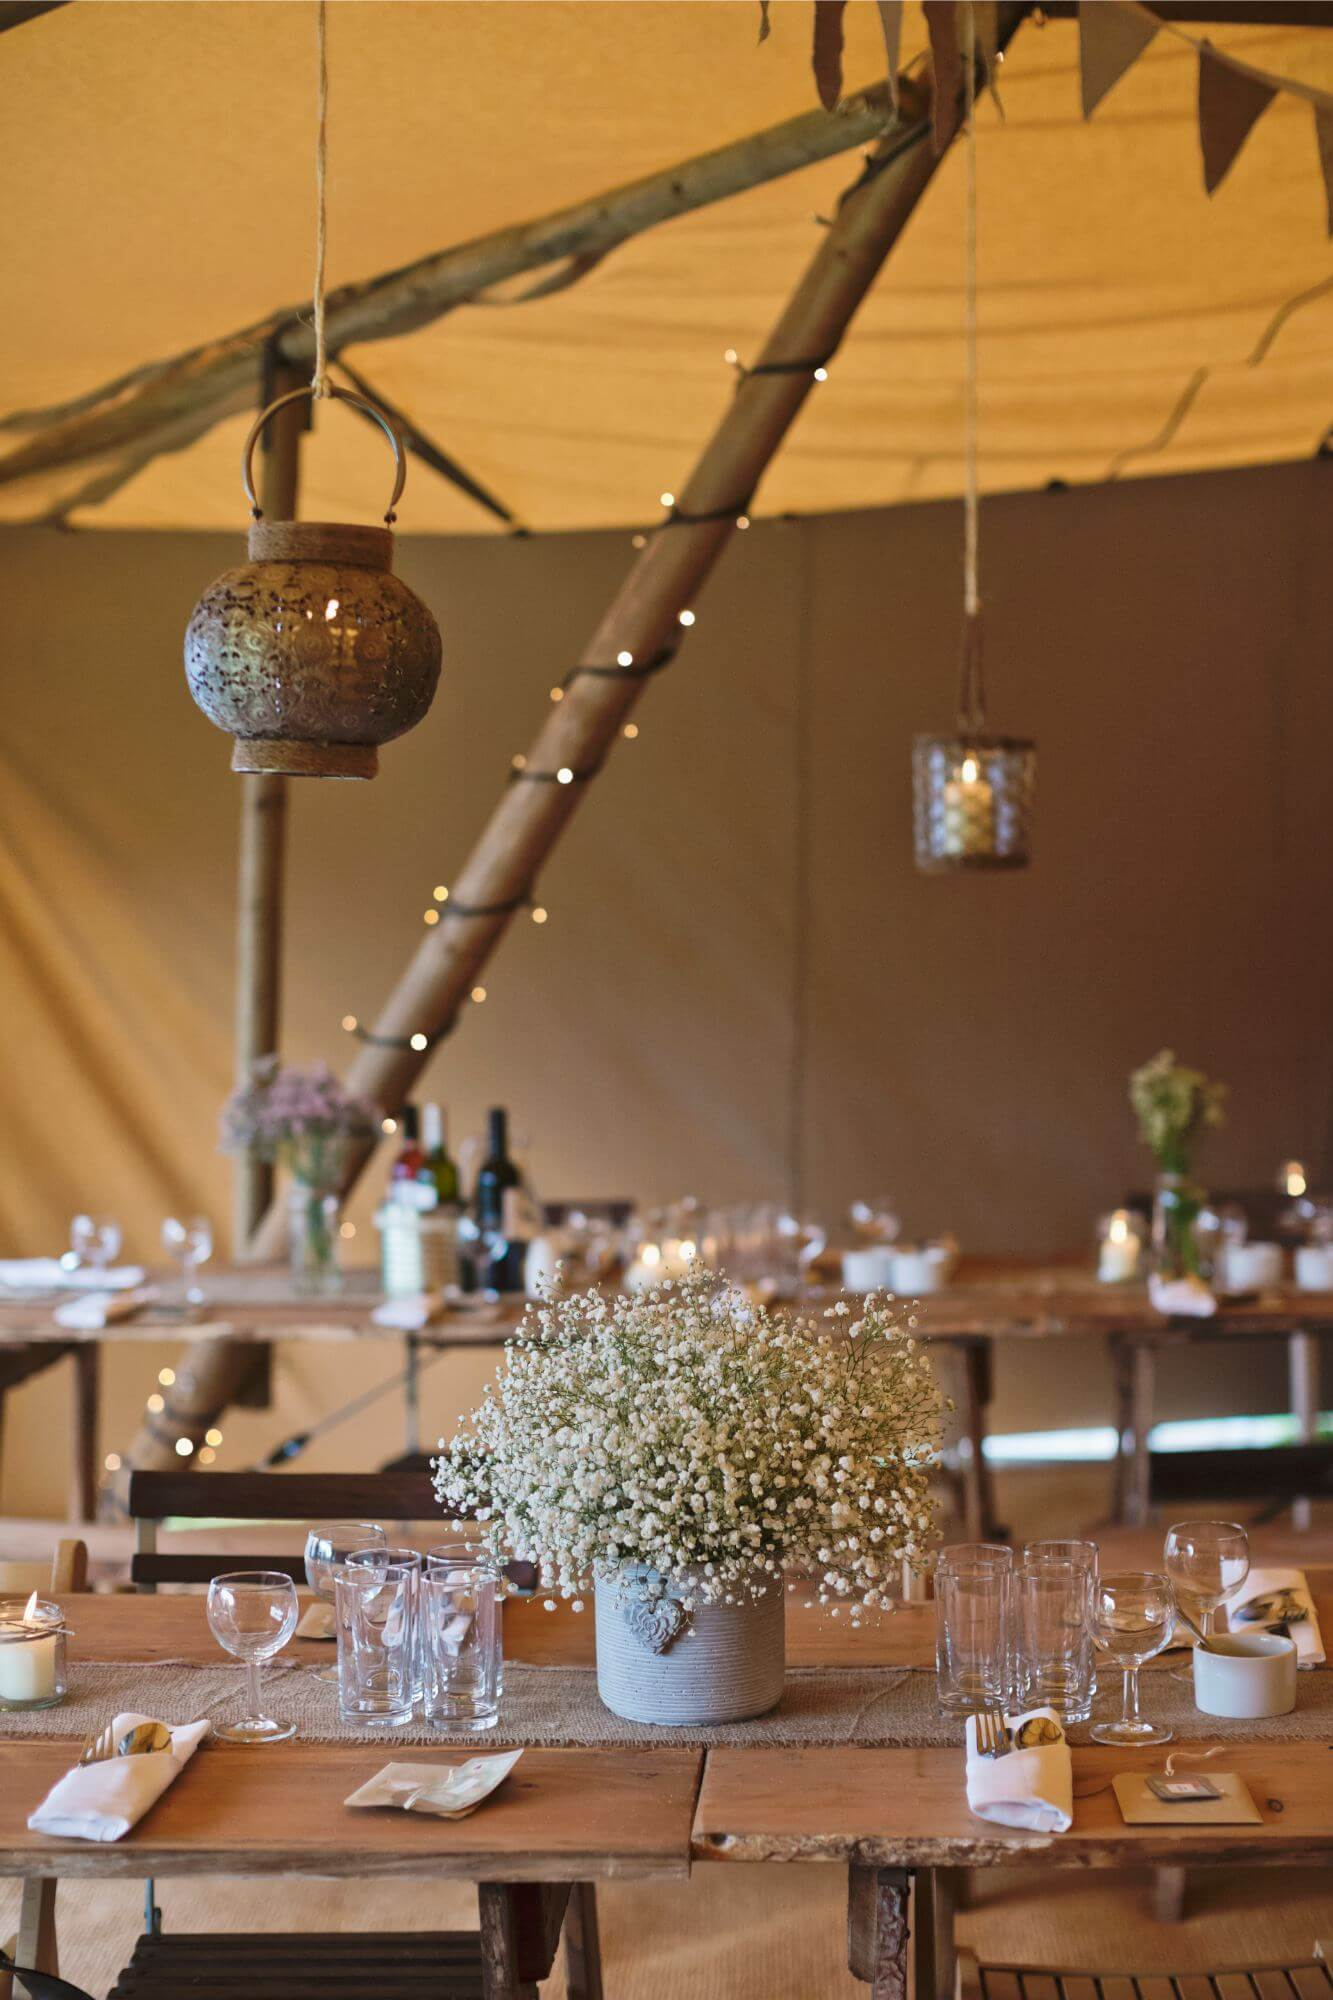 An inside photograph of the inside of a Tipi, setup with beautiful lighting, flowers and dining ware.